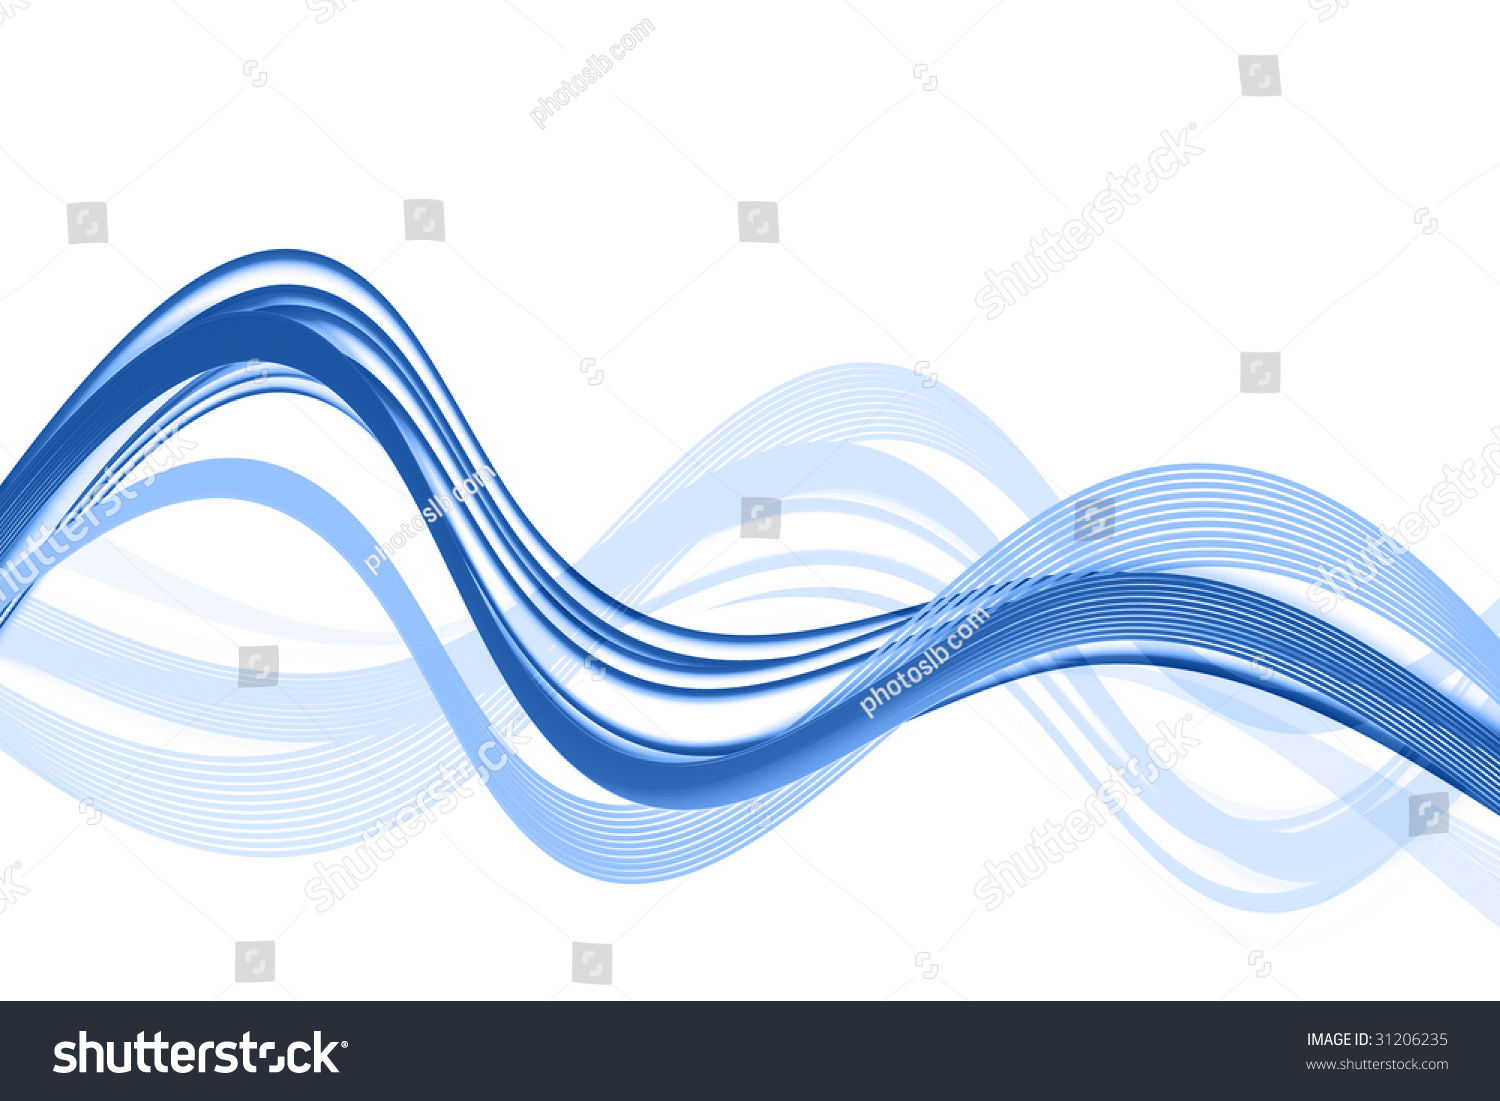 simple waves design